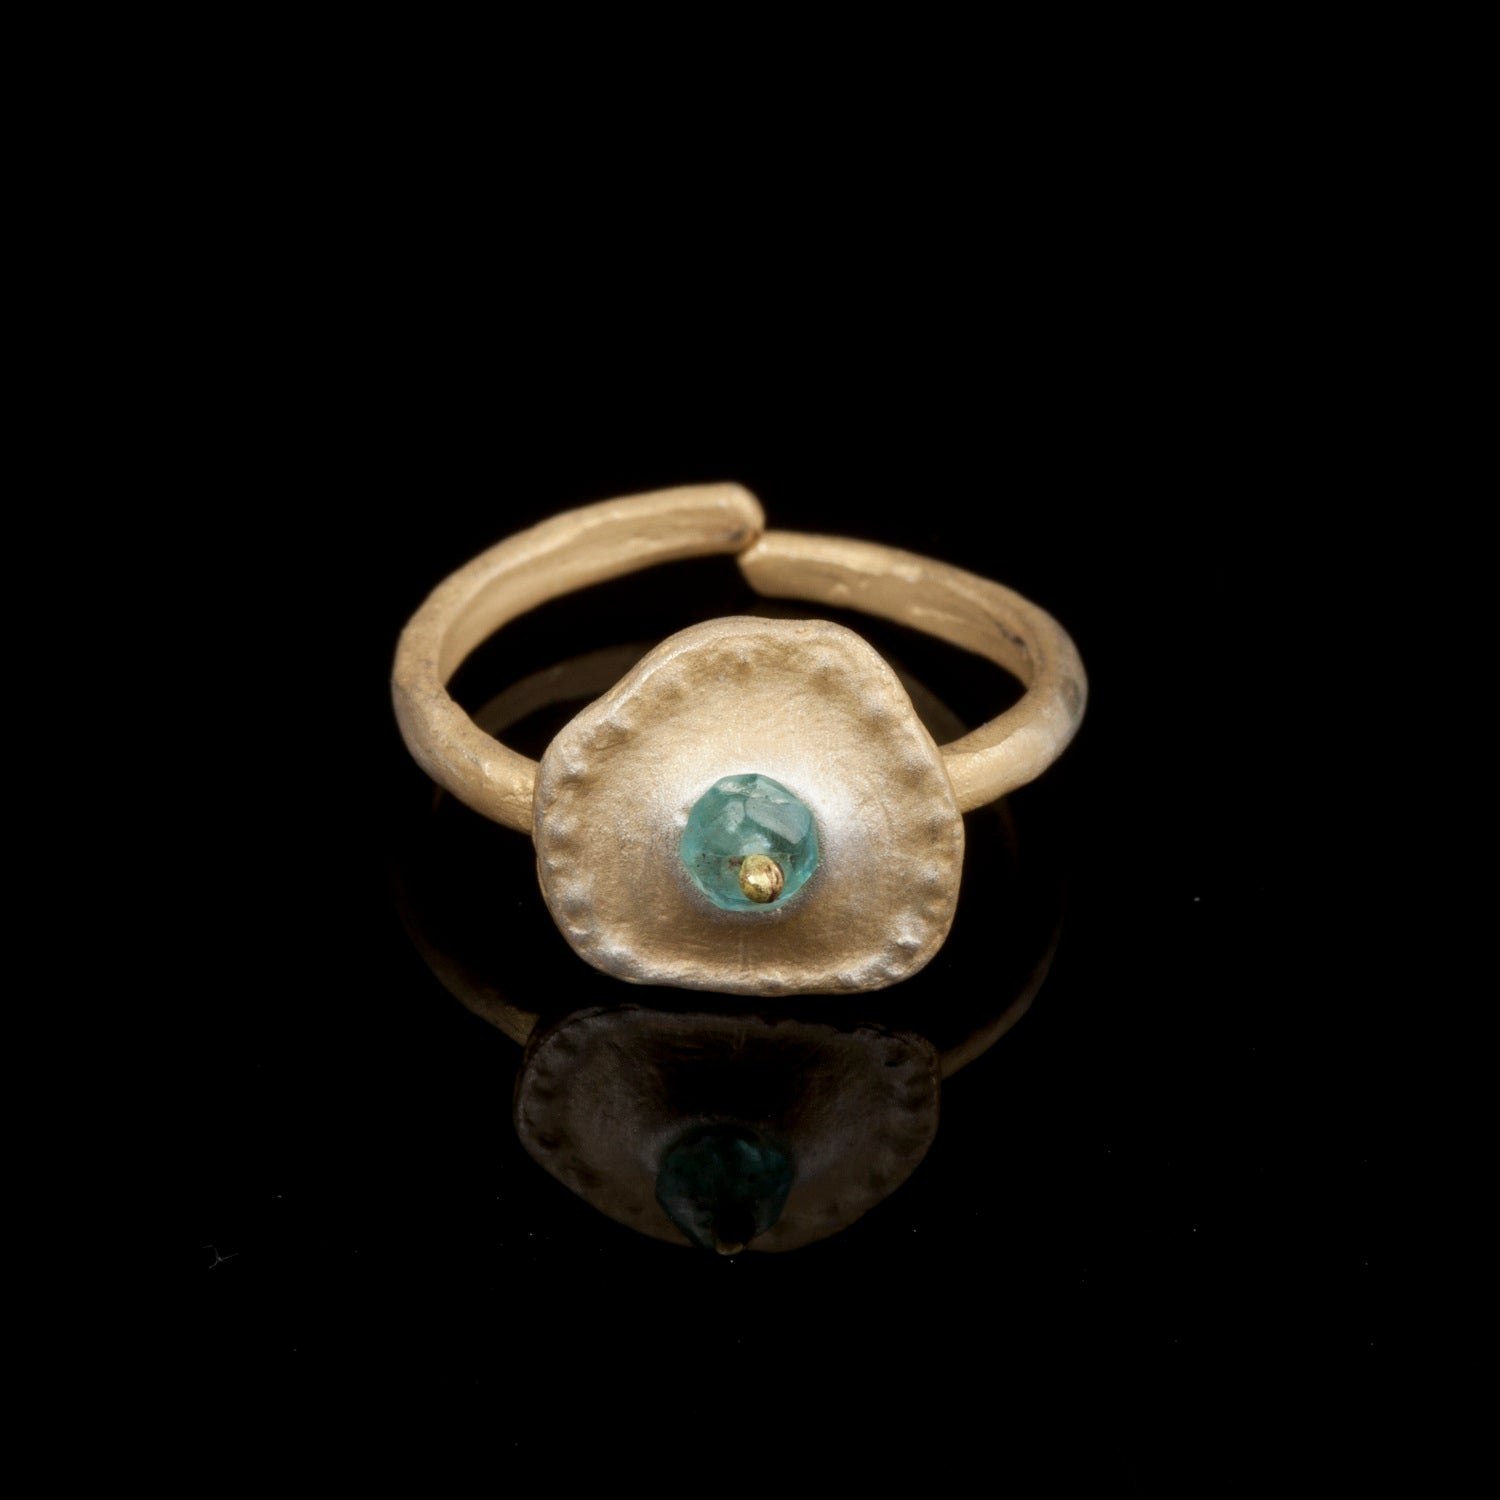 Sea Urchin Single Ring - Apatite